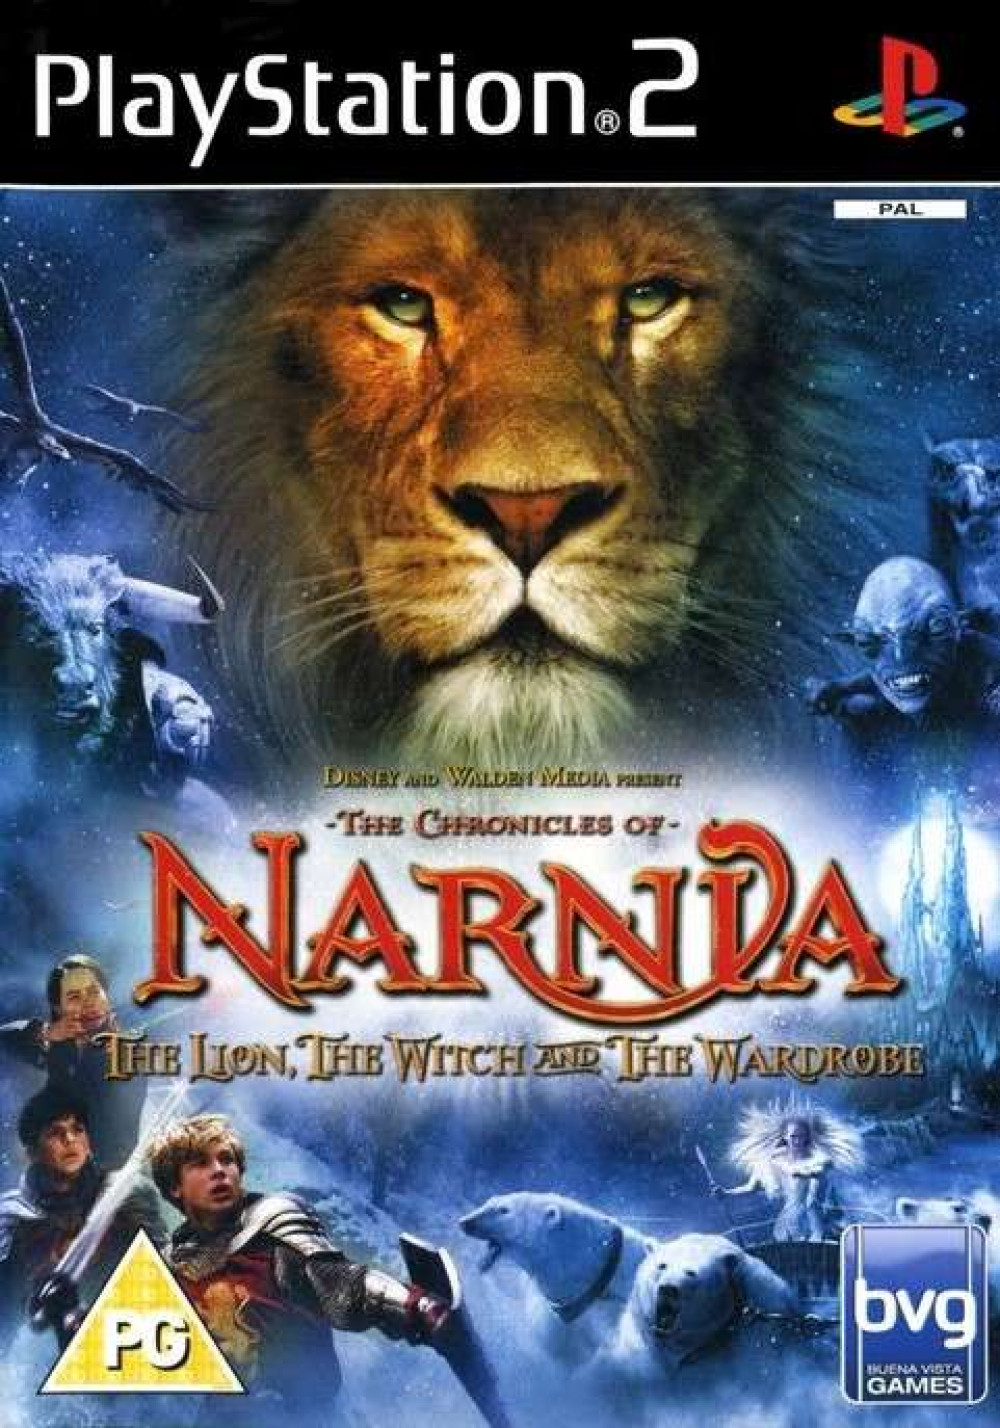 The Chronicles of Narnia The Lion, The Witch and The Wardrobe PS2